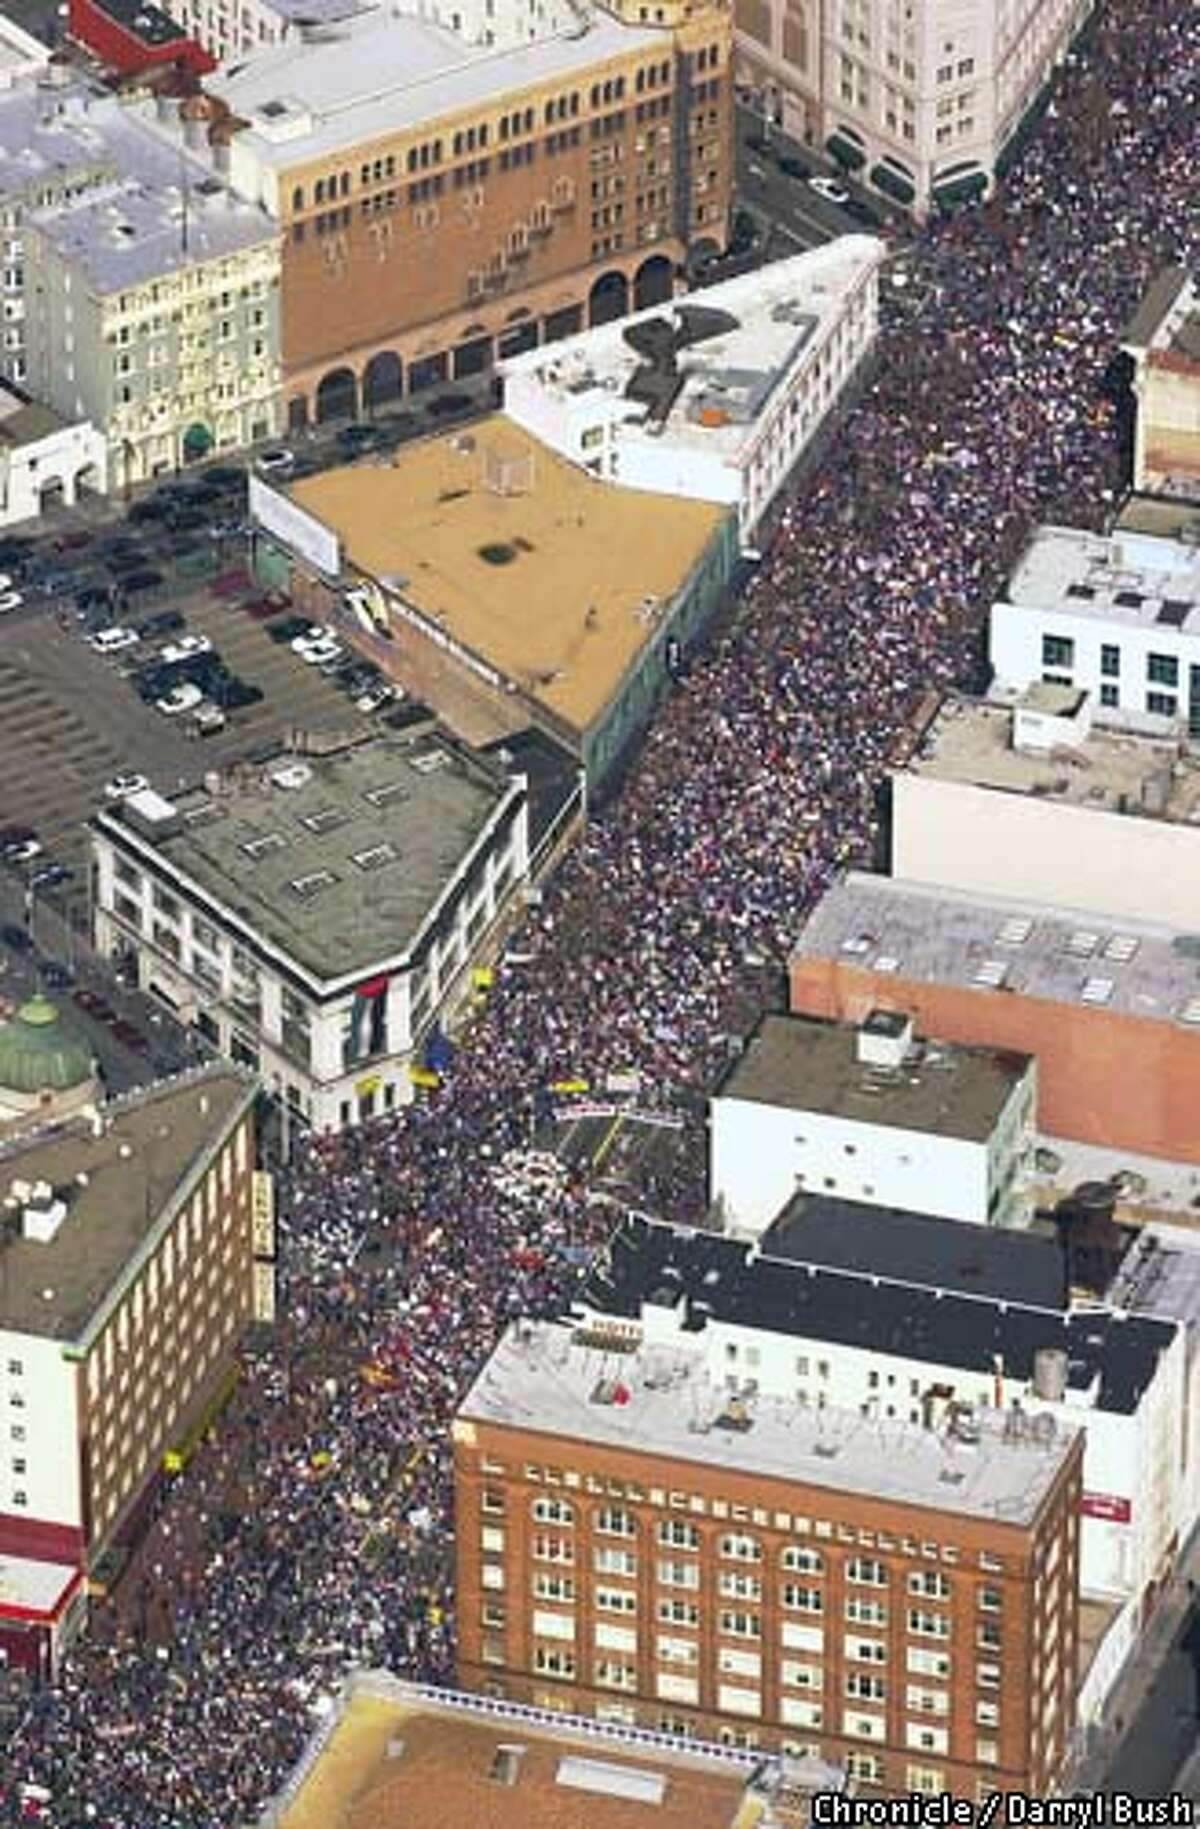 Peace march in downtown San Francisco drew thousands on Market Street. Chronicle Photo by Darryl Bush